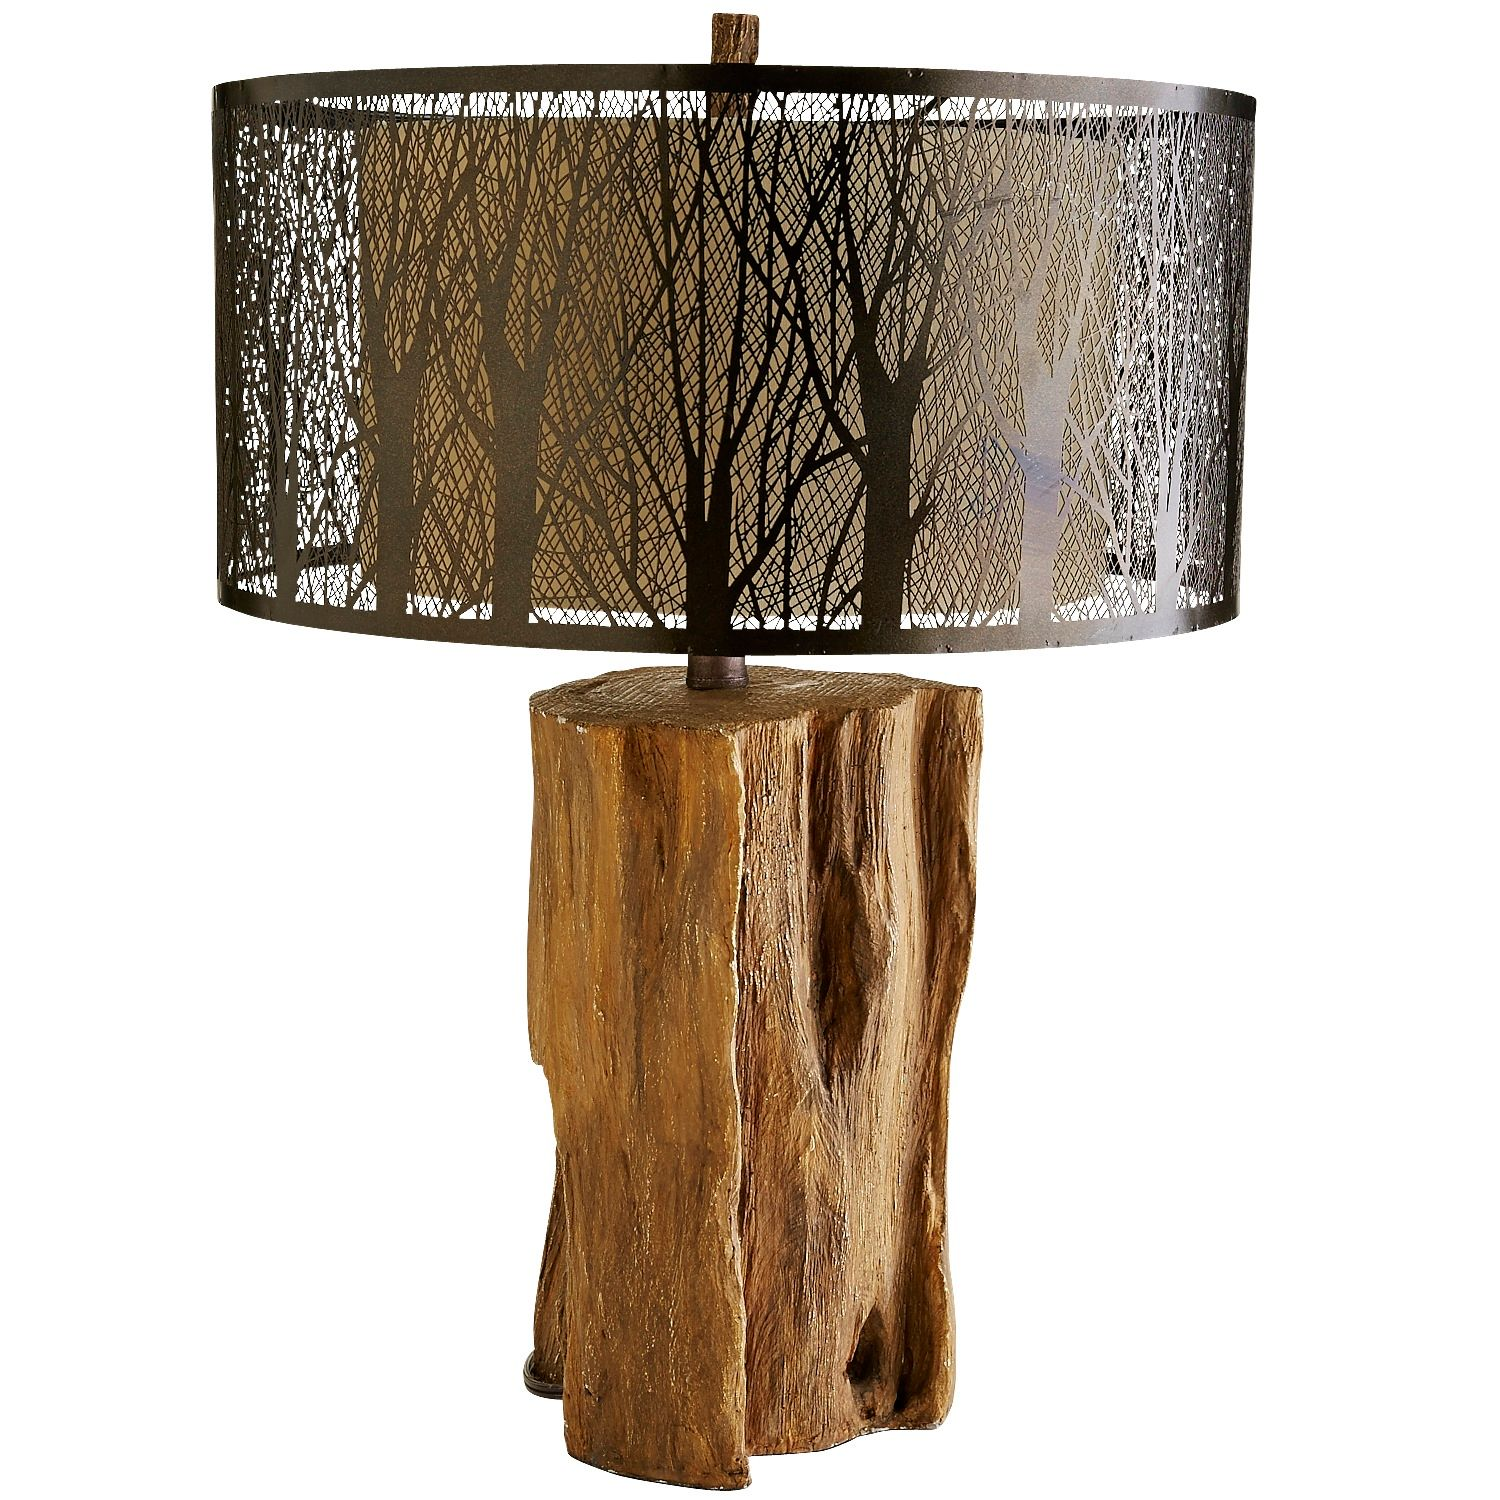 etched birches table lamp pier imports one accent lamps antique stand glass chinese shades mirror nightstand tablecloth outdoor wicker furniture purple linens drop leaf with